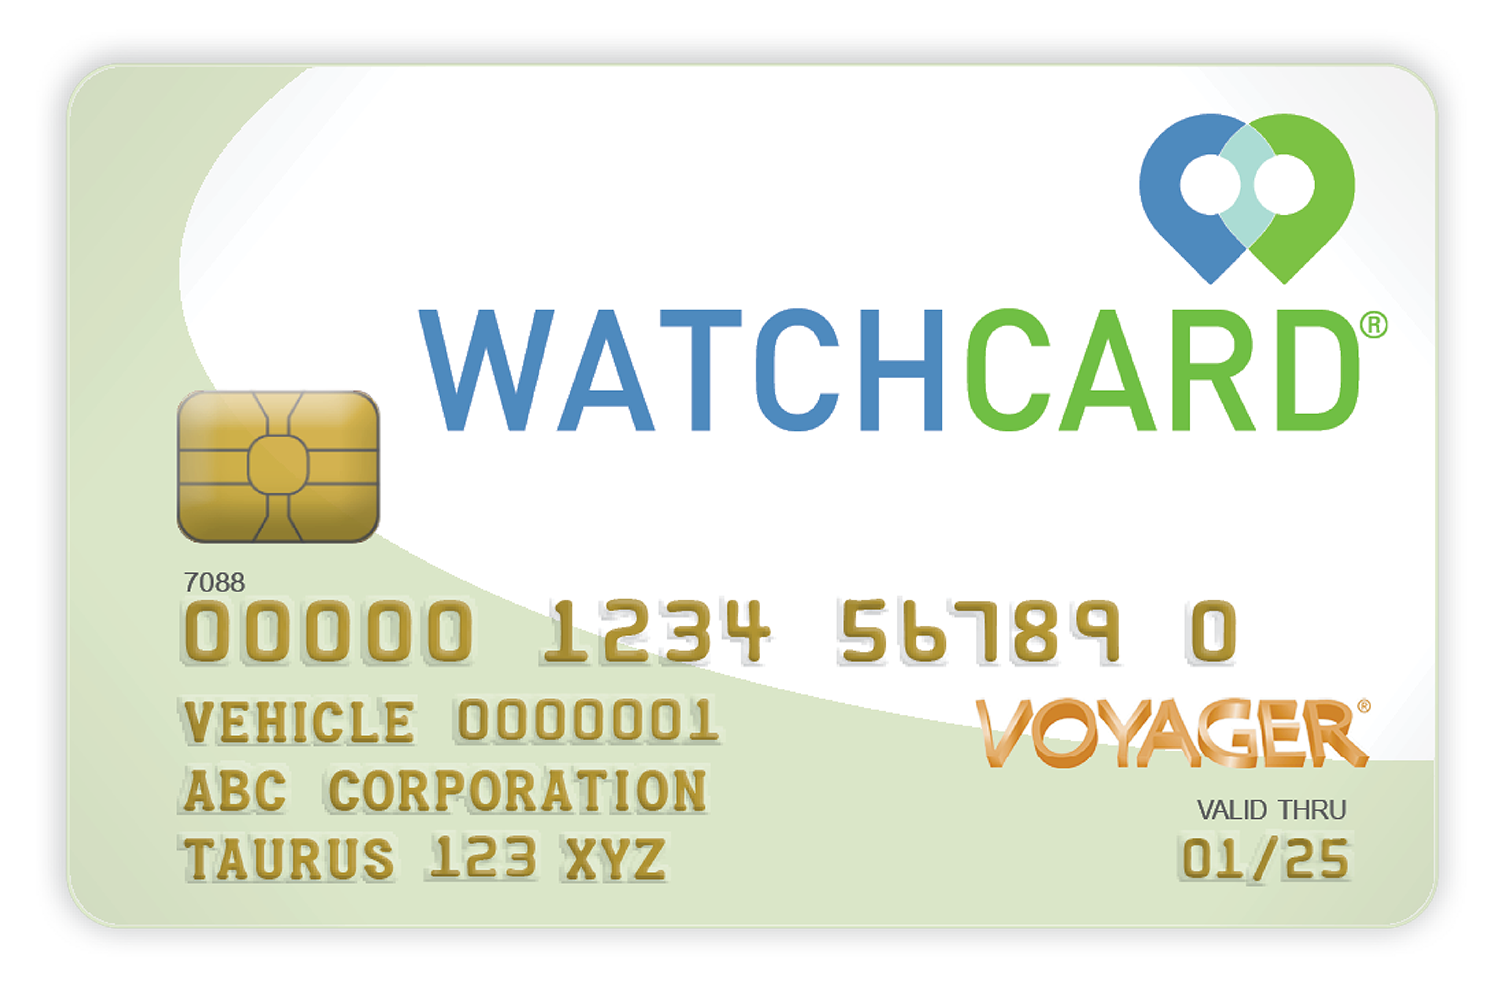 Watchcard Fuel Card